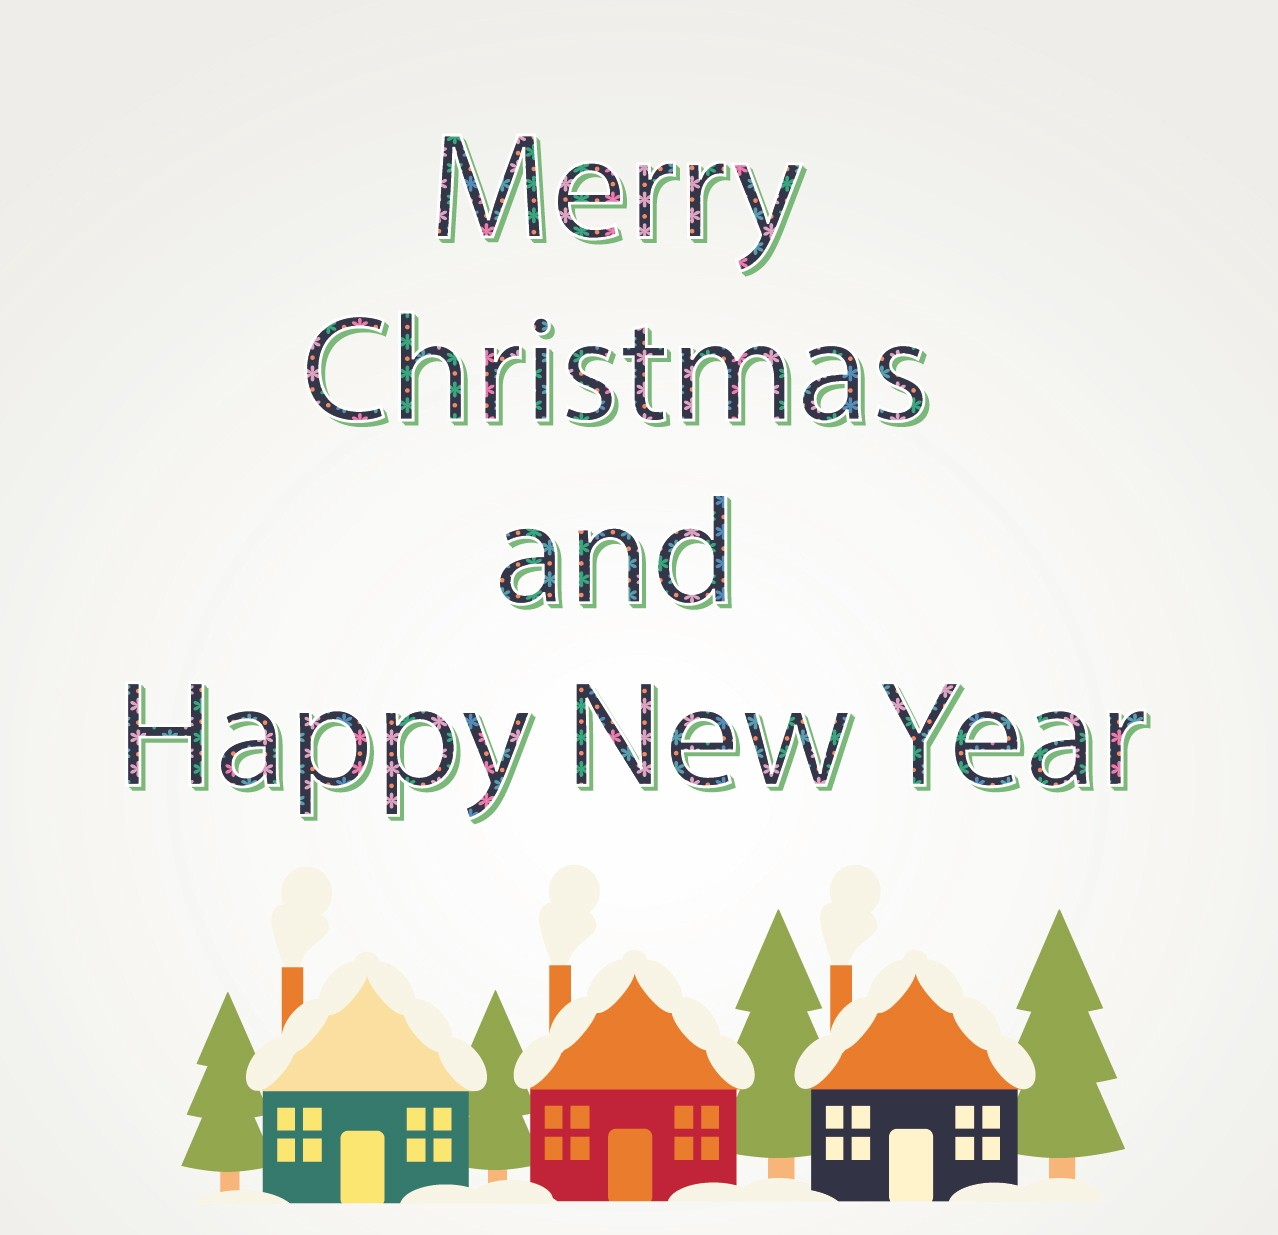 Merry christmas and happy new year clip art wallpaper   Clipartix 1278x1235